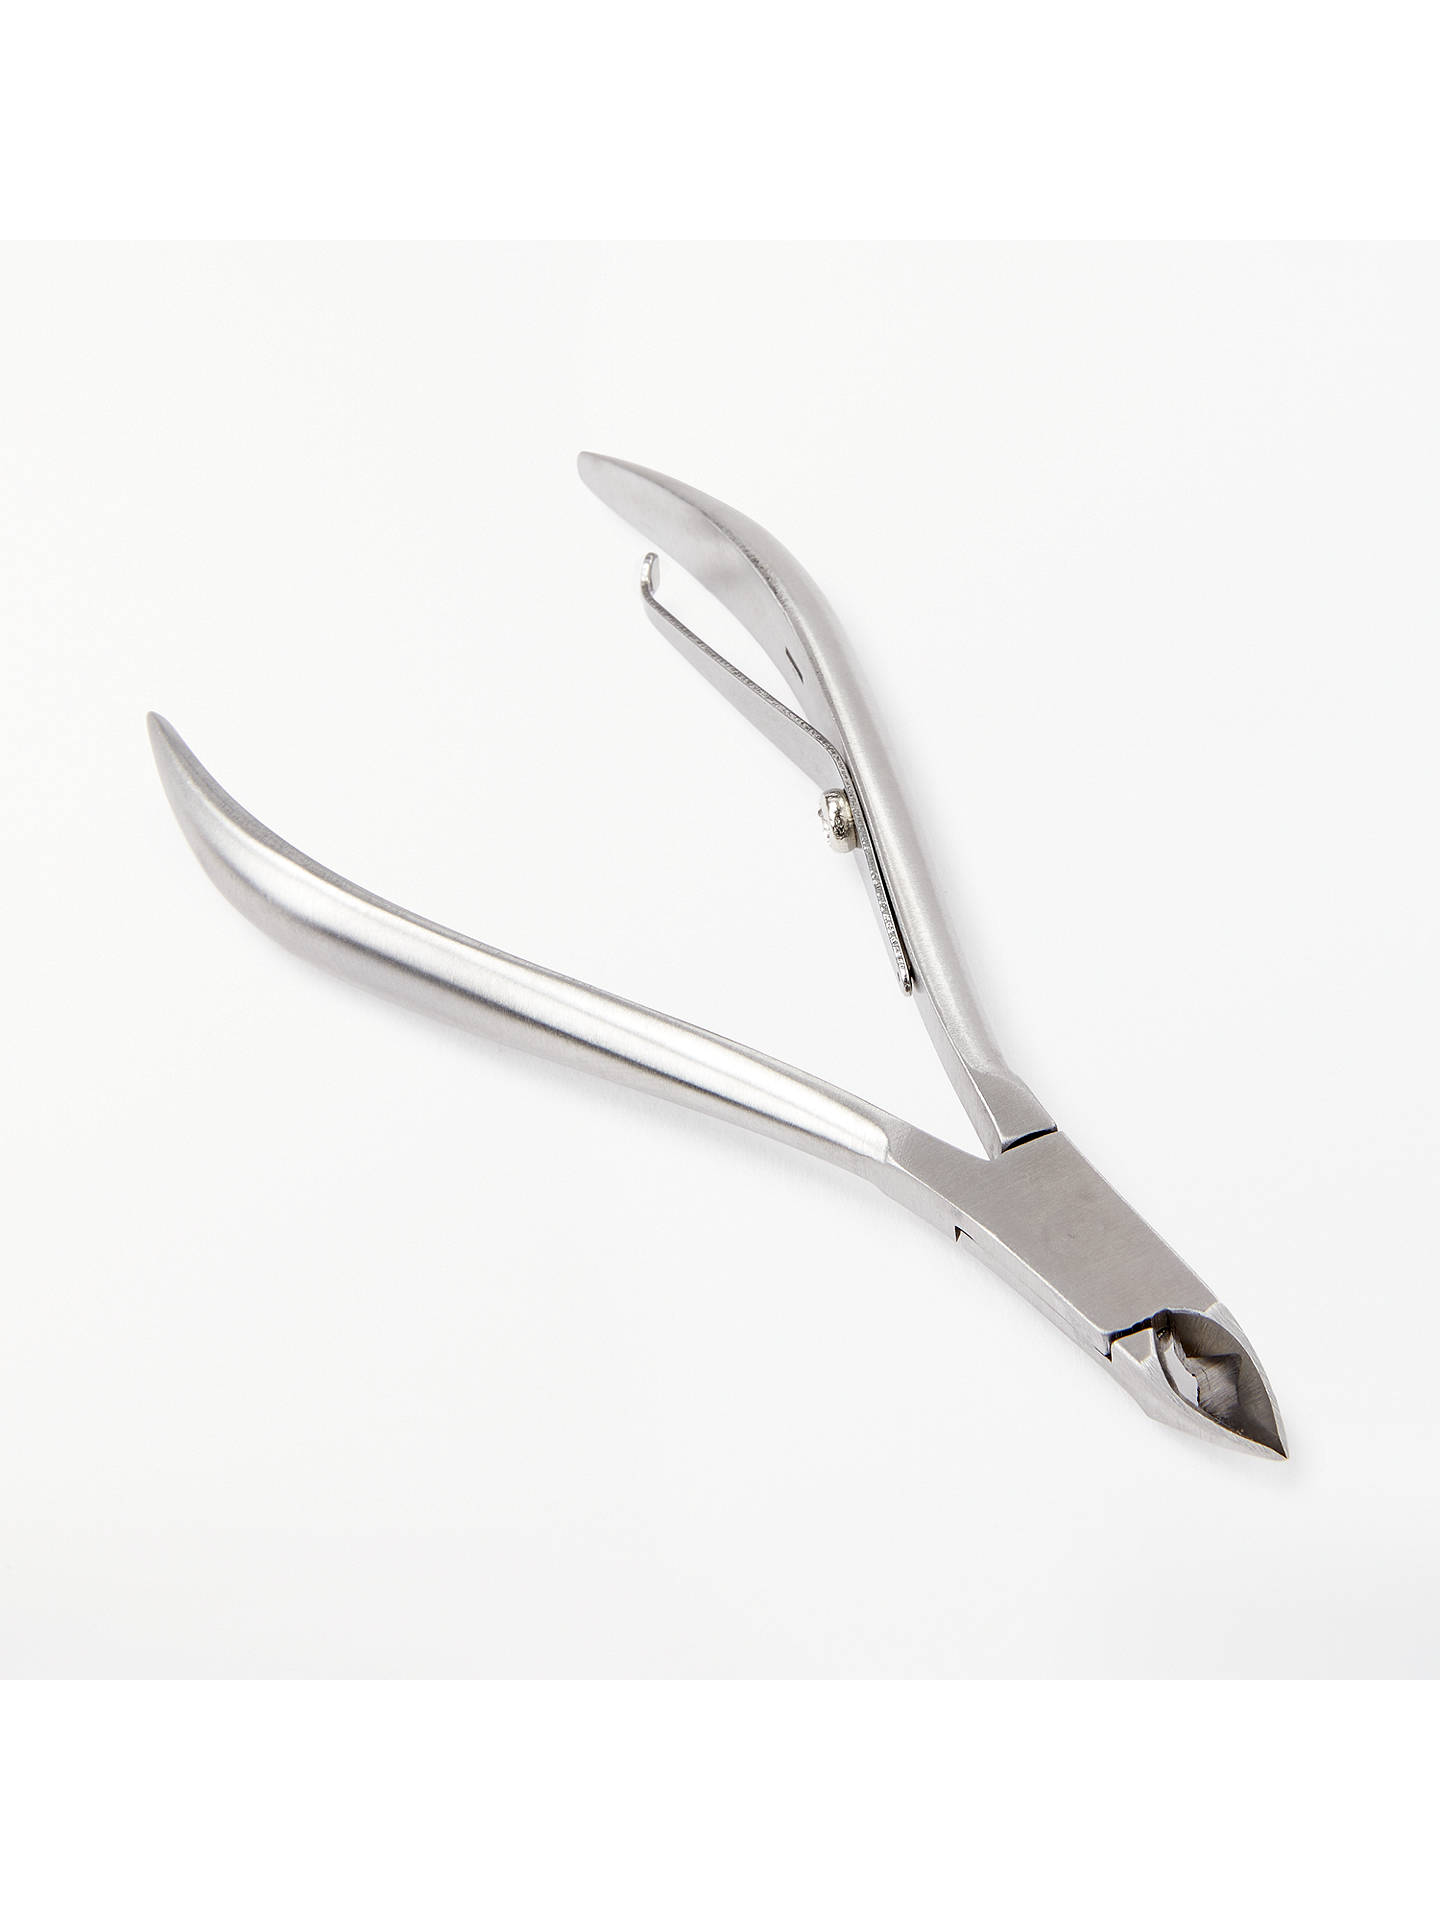 Buy John Lewis & Partners Cutical Nippers Online at johnlewis.com